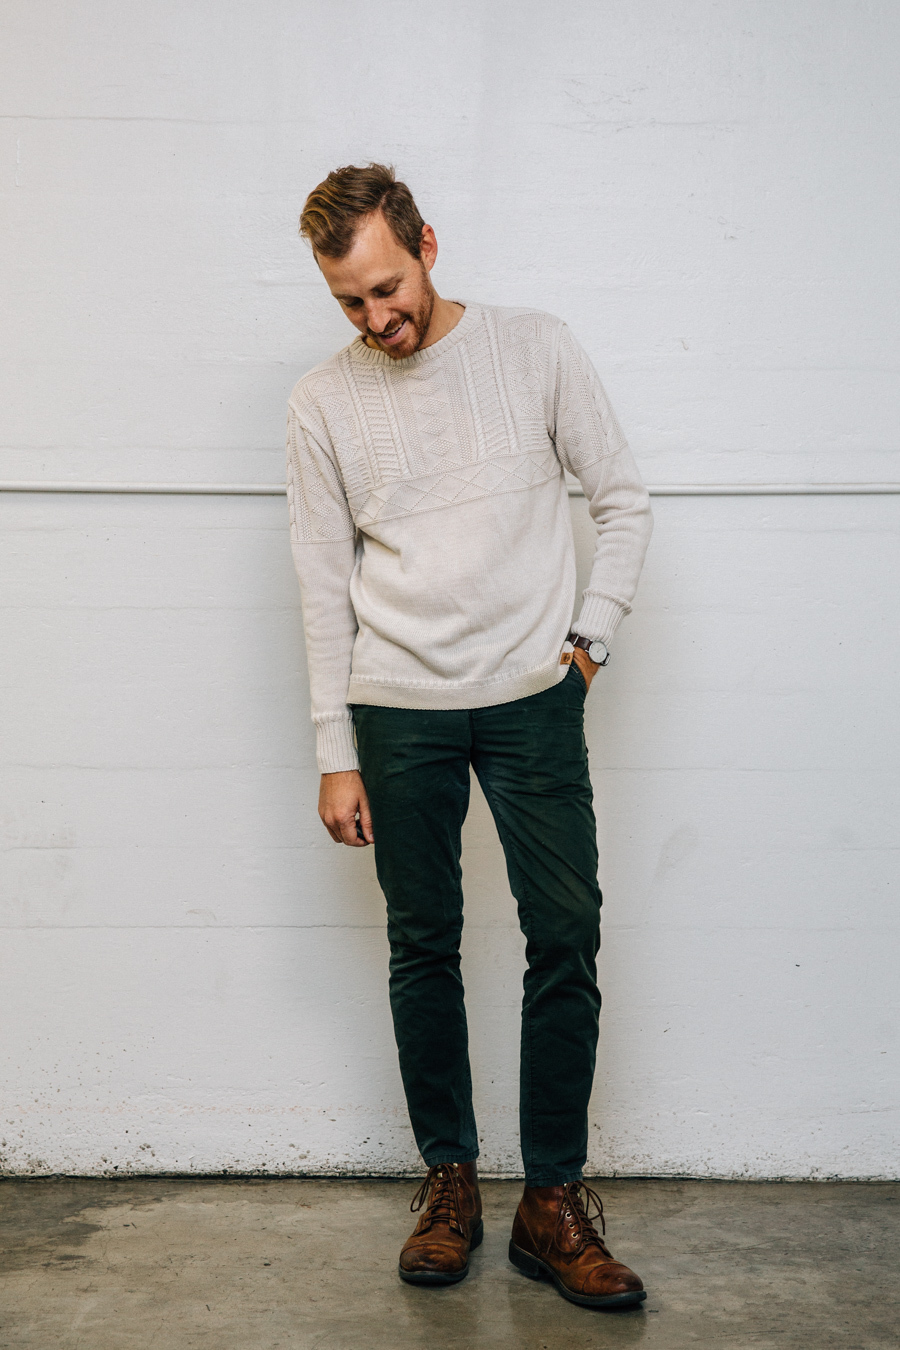 Men's Beige Cable Sweater, Dark Green Corduroy Jeans, Brown Leather Casual  Boots | Men's Fashion